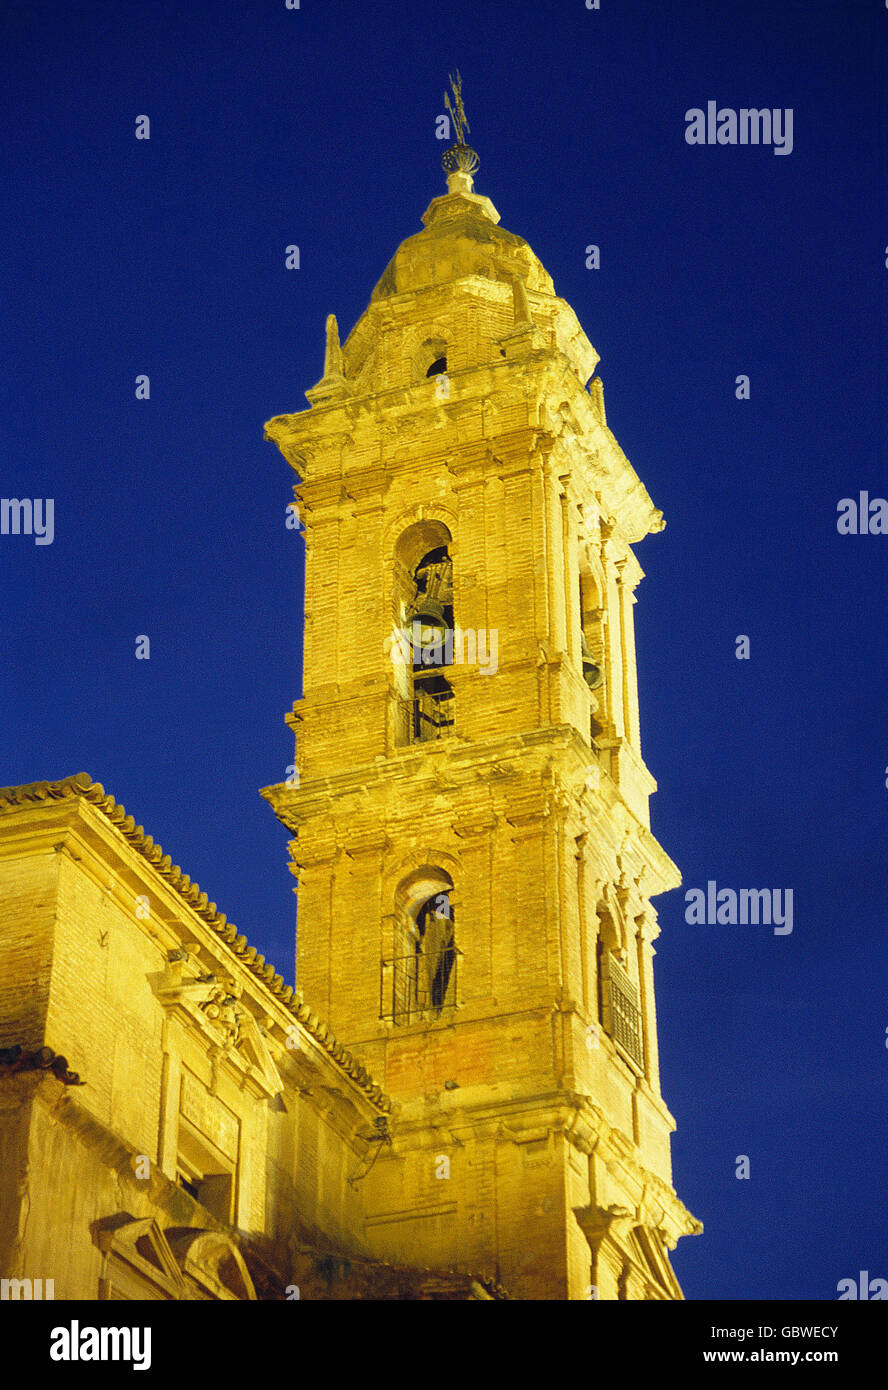 Tower of San Agustin church, night view. Antequera, Malaga province, Andalucia, Spain. - Stock Image